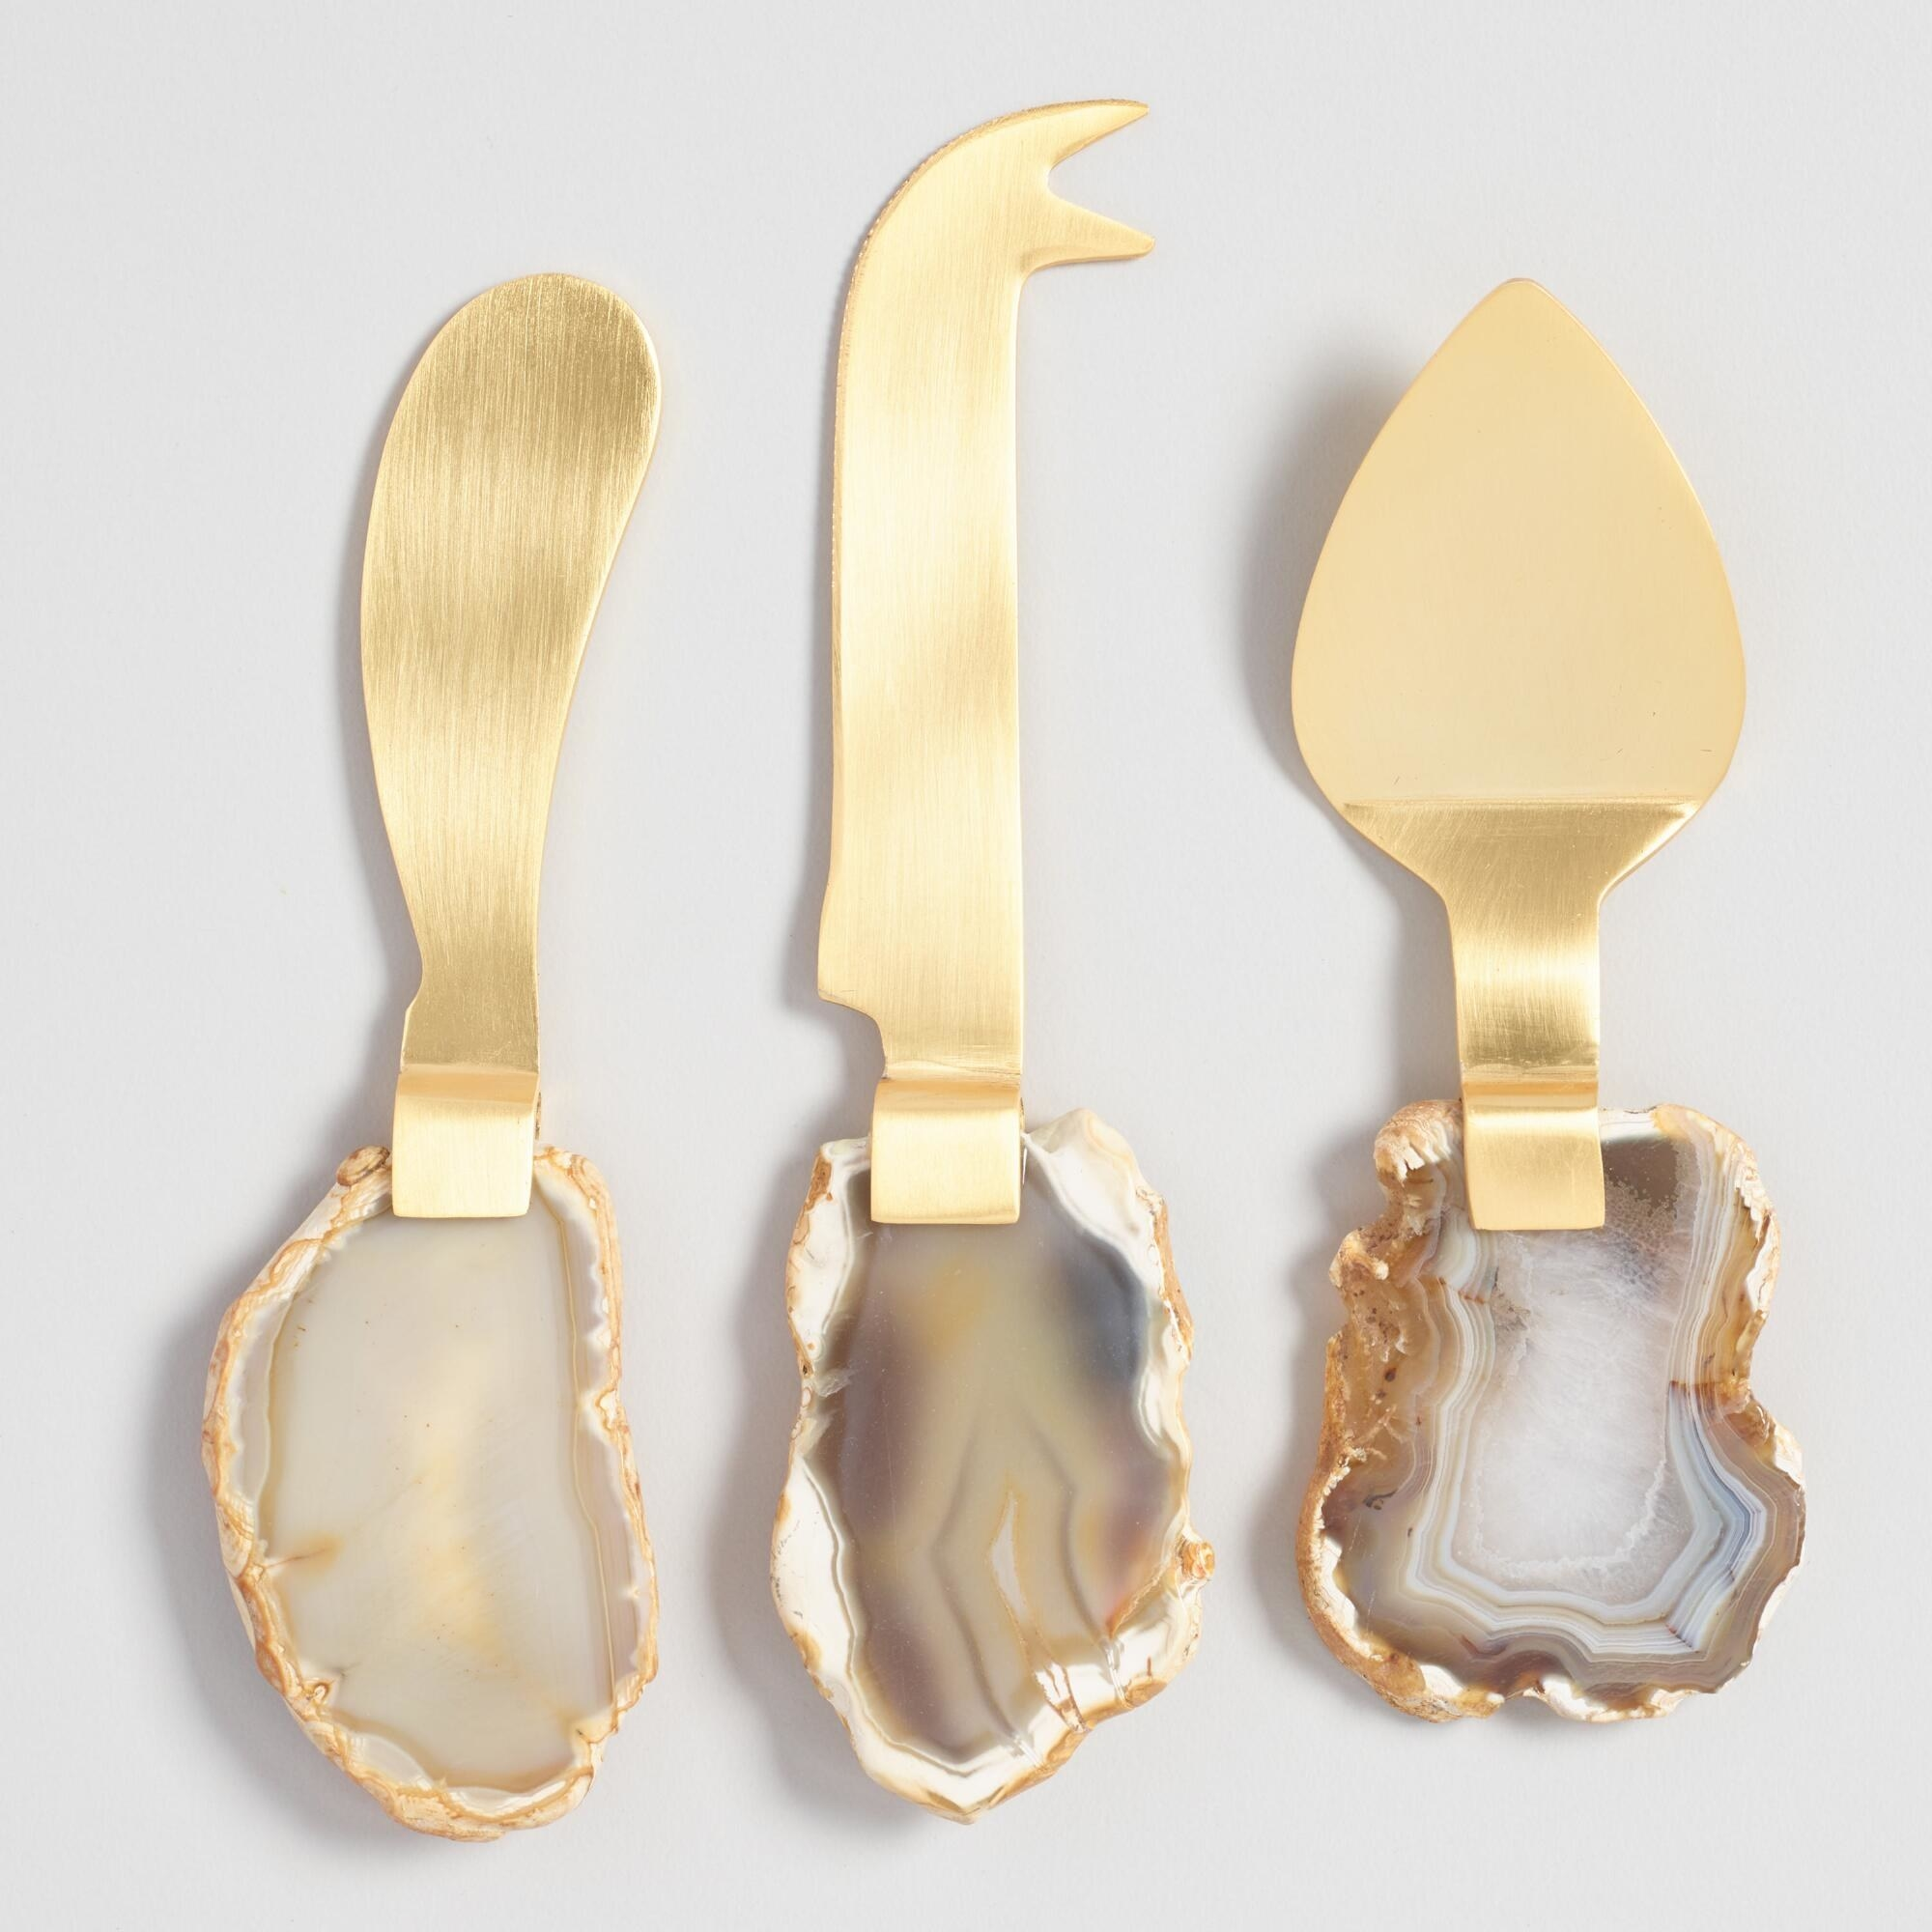 The utensils with brown-grey-gold agates as handles